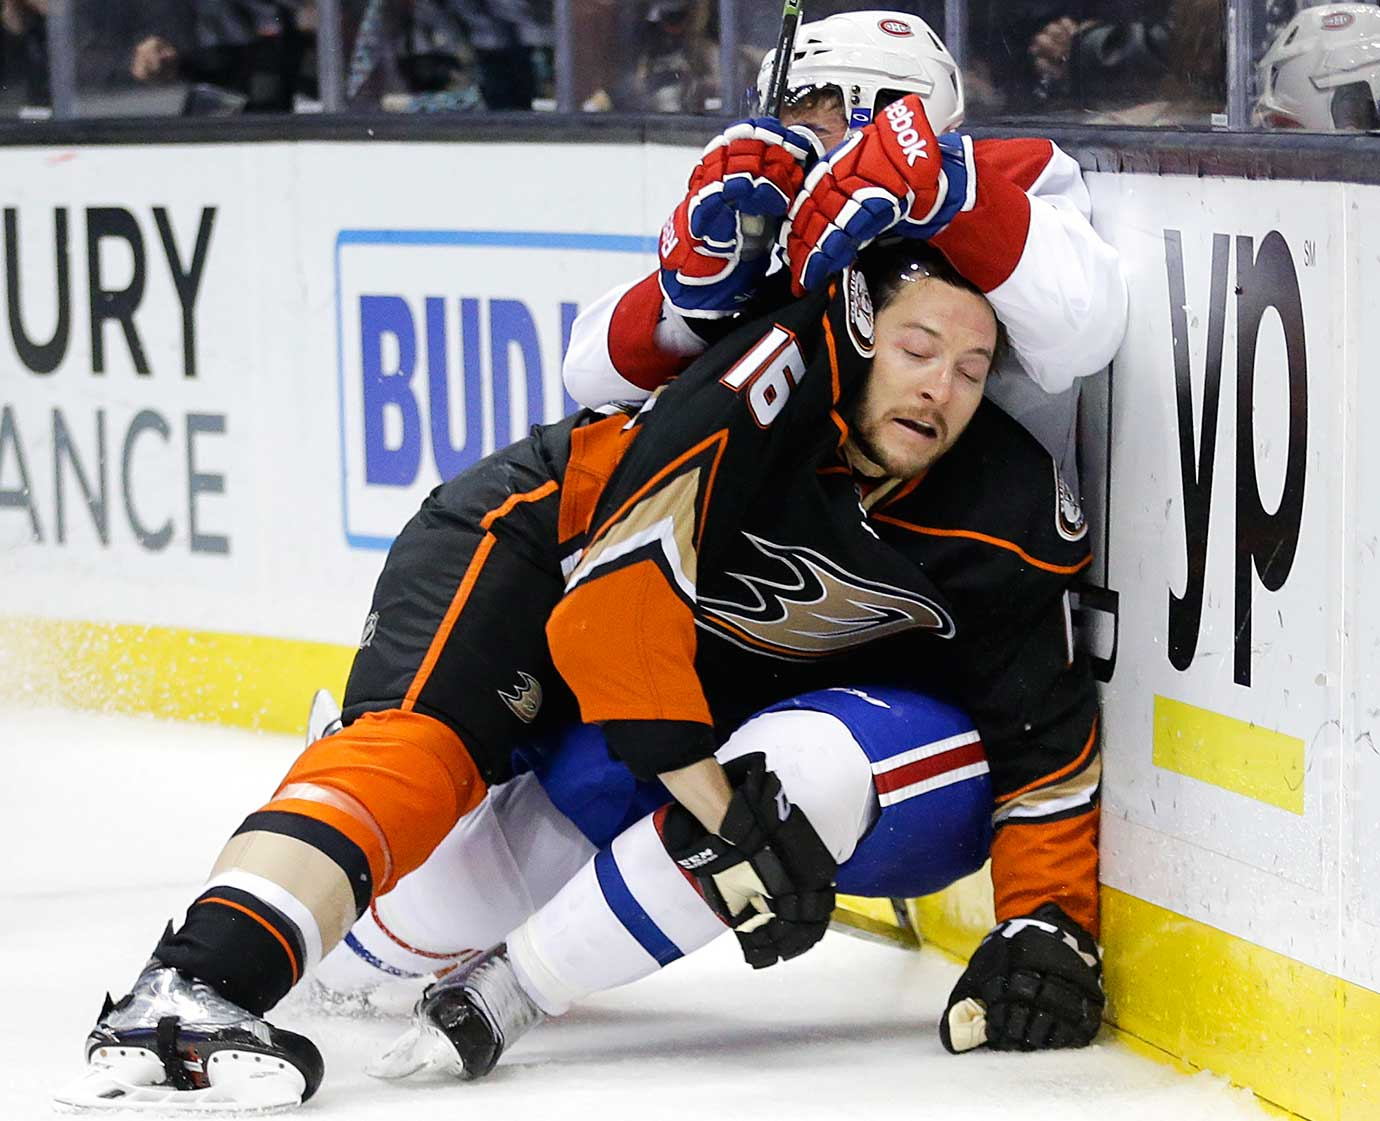 Ryan Garbutt of Anaheim gets hit by Phillip Danault of the Montreal Canadiens.